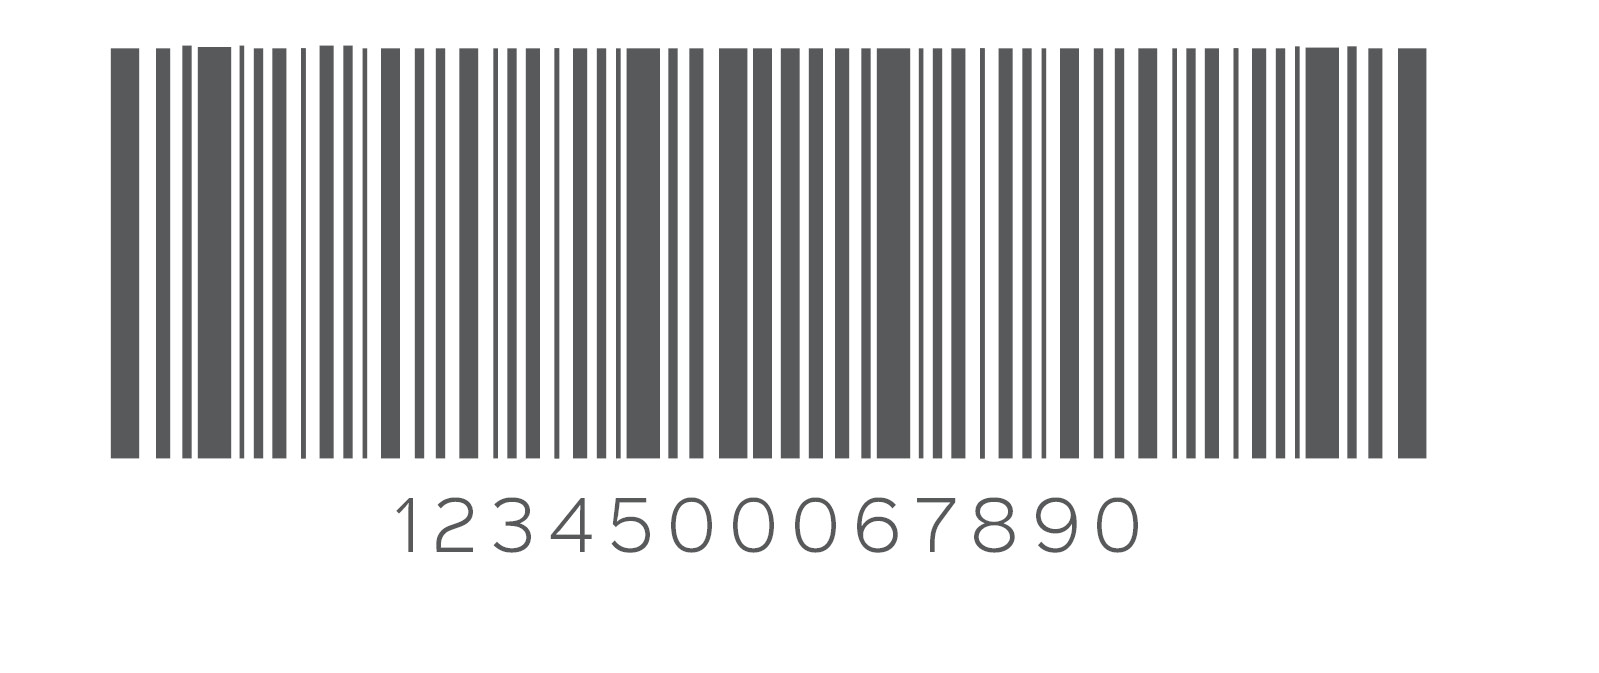 Creating a Barcode Generator in App Inventor 2 - open source